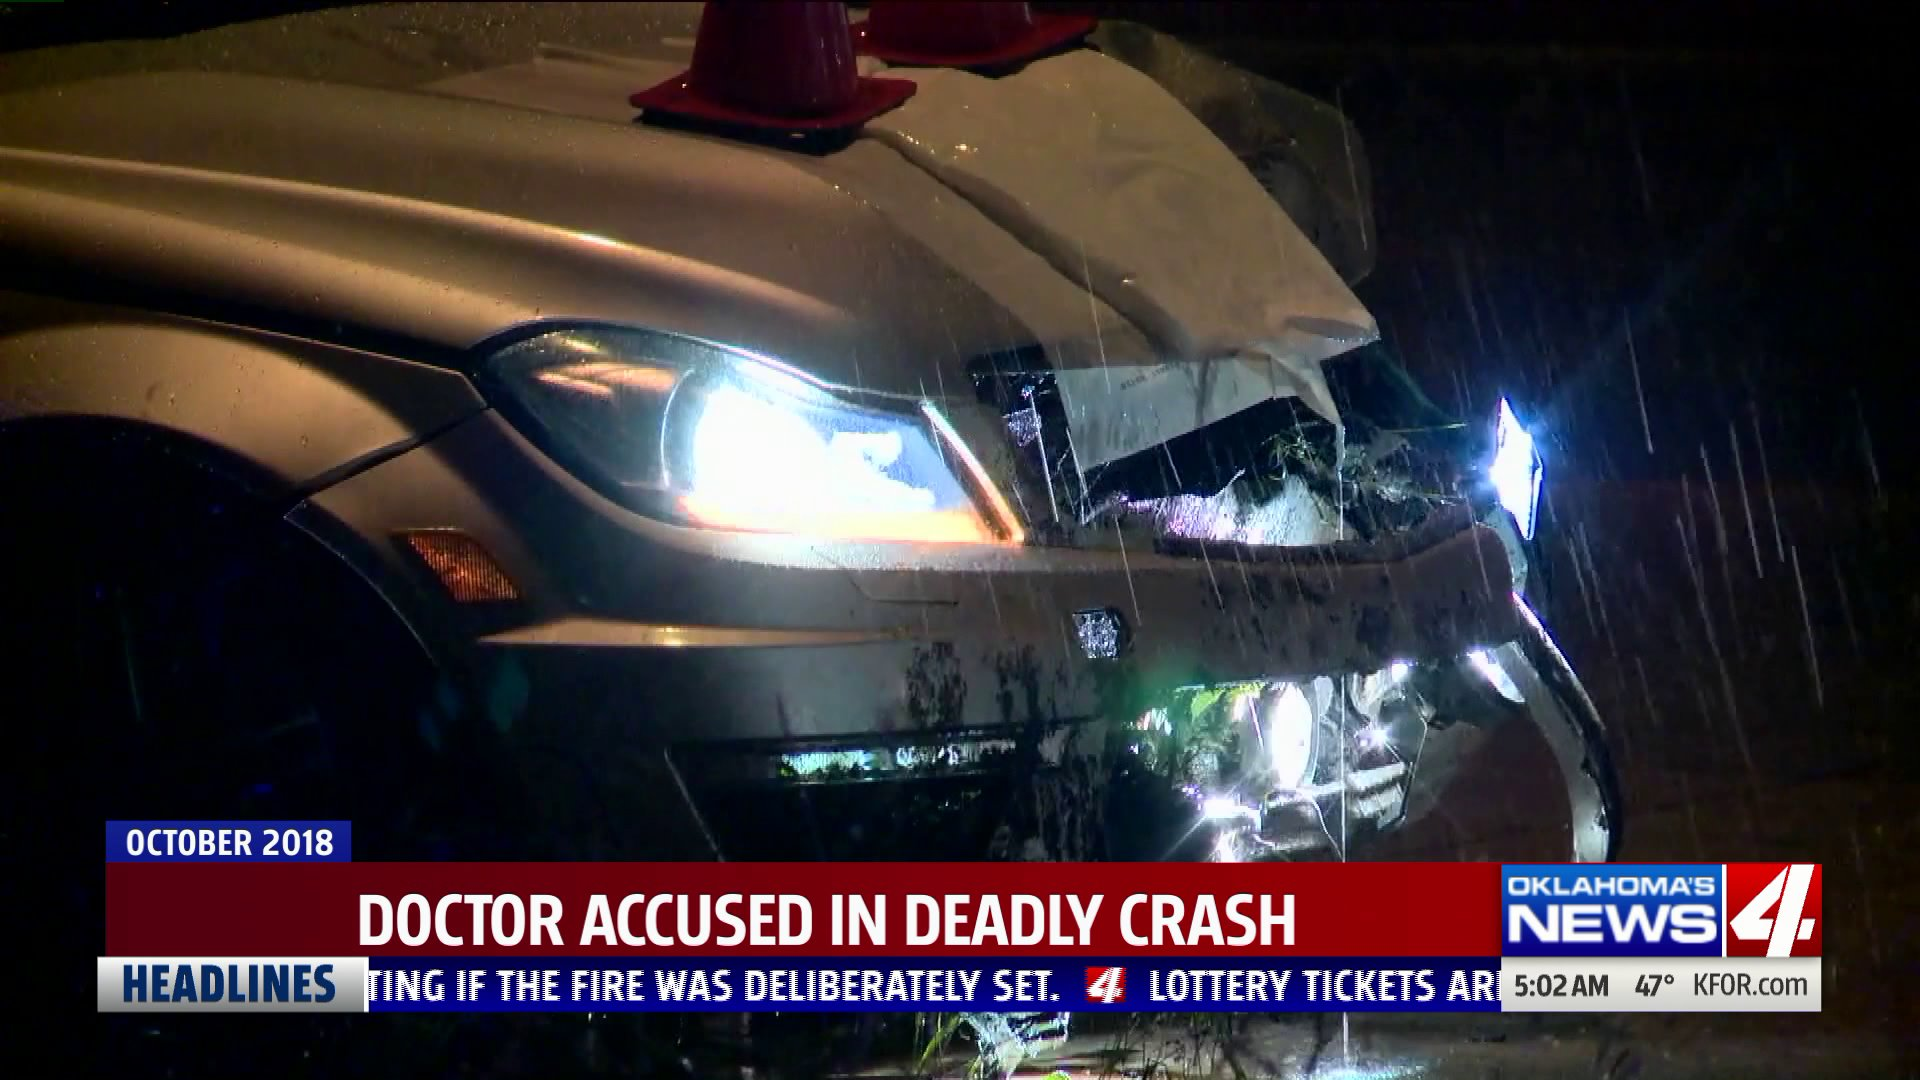 Doctor accused in deadly crash